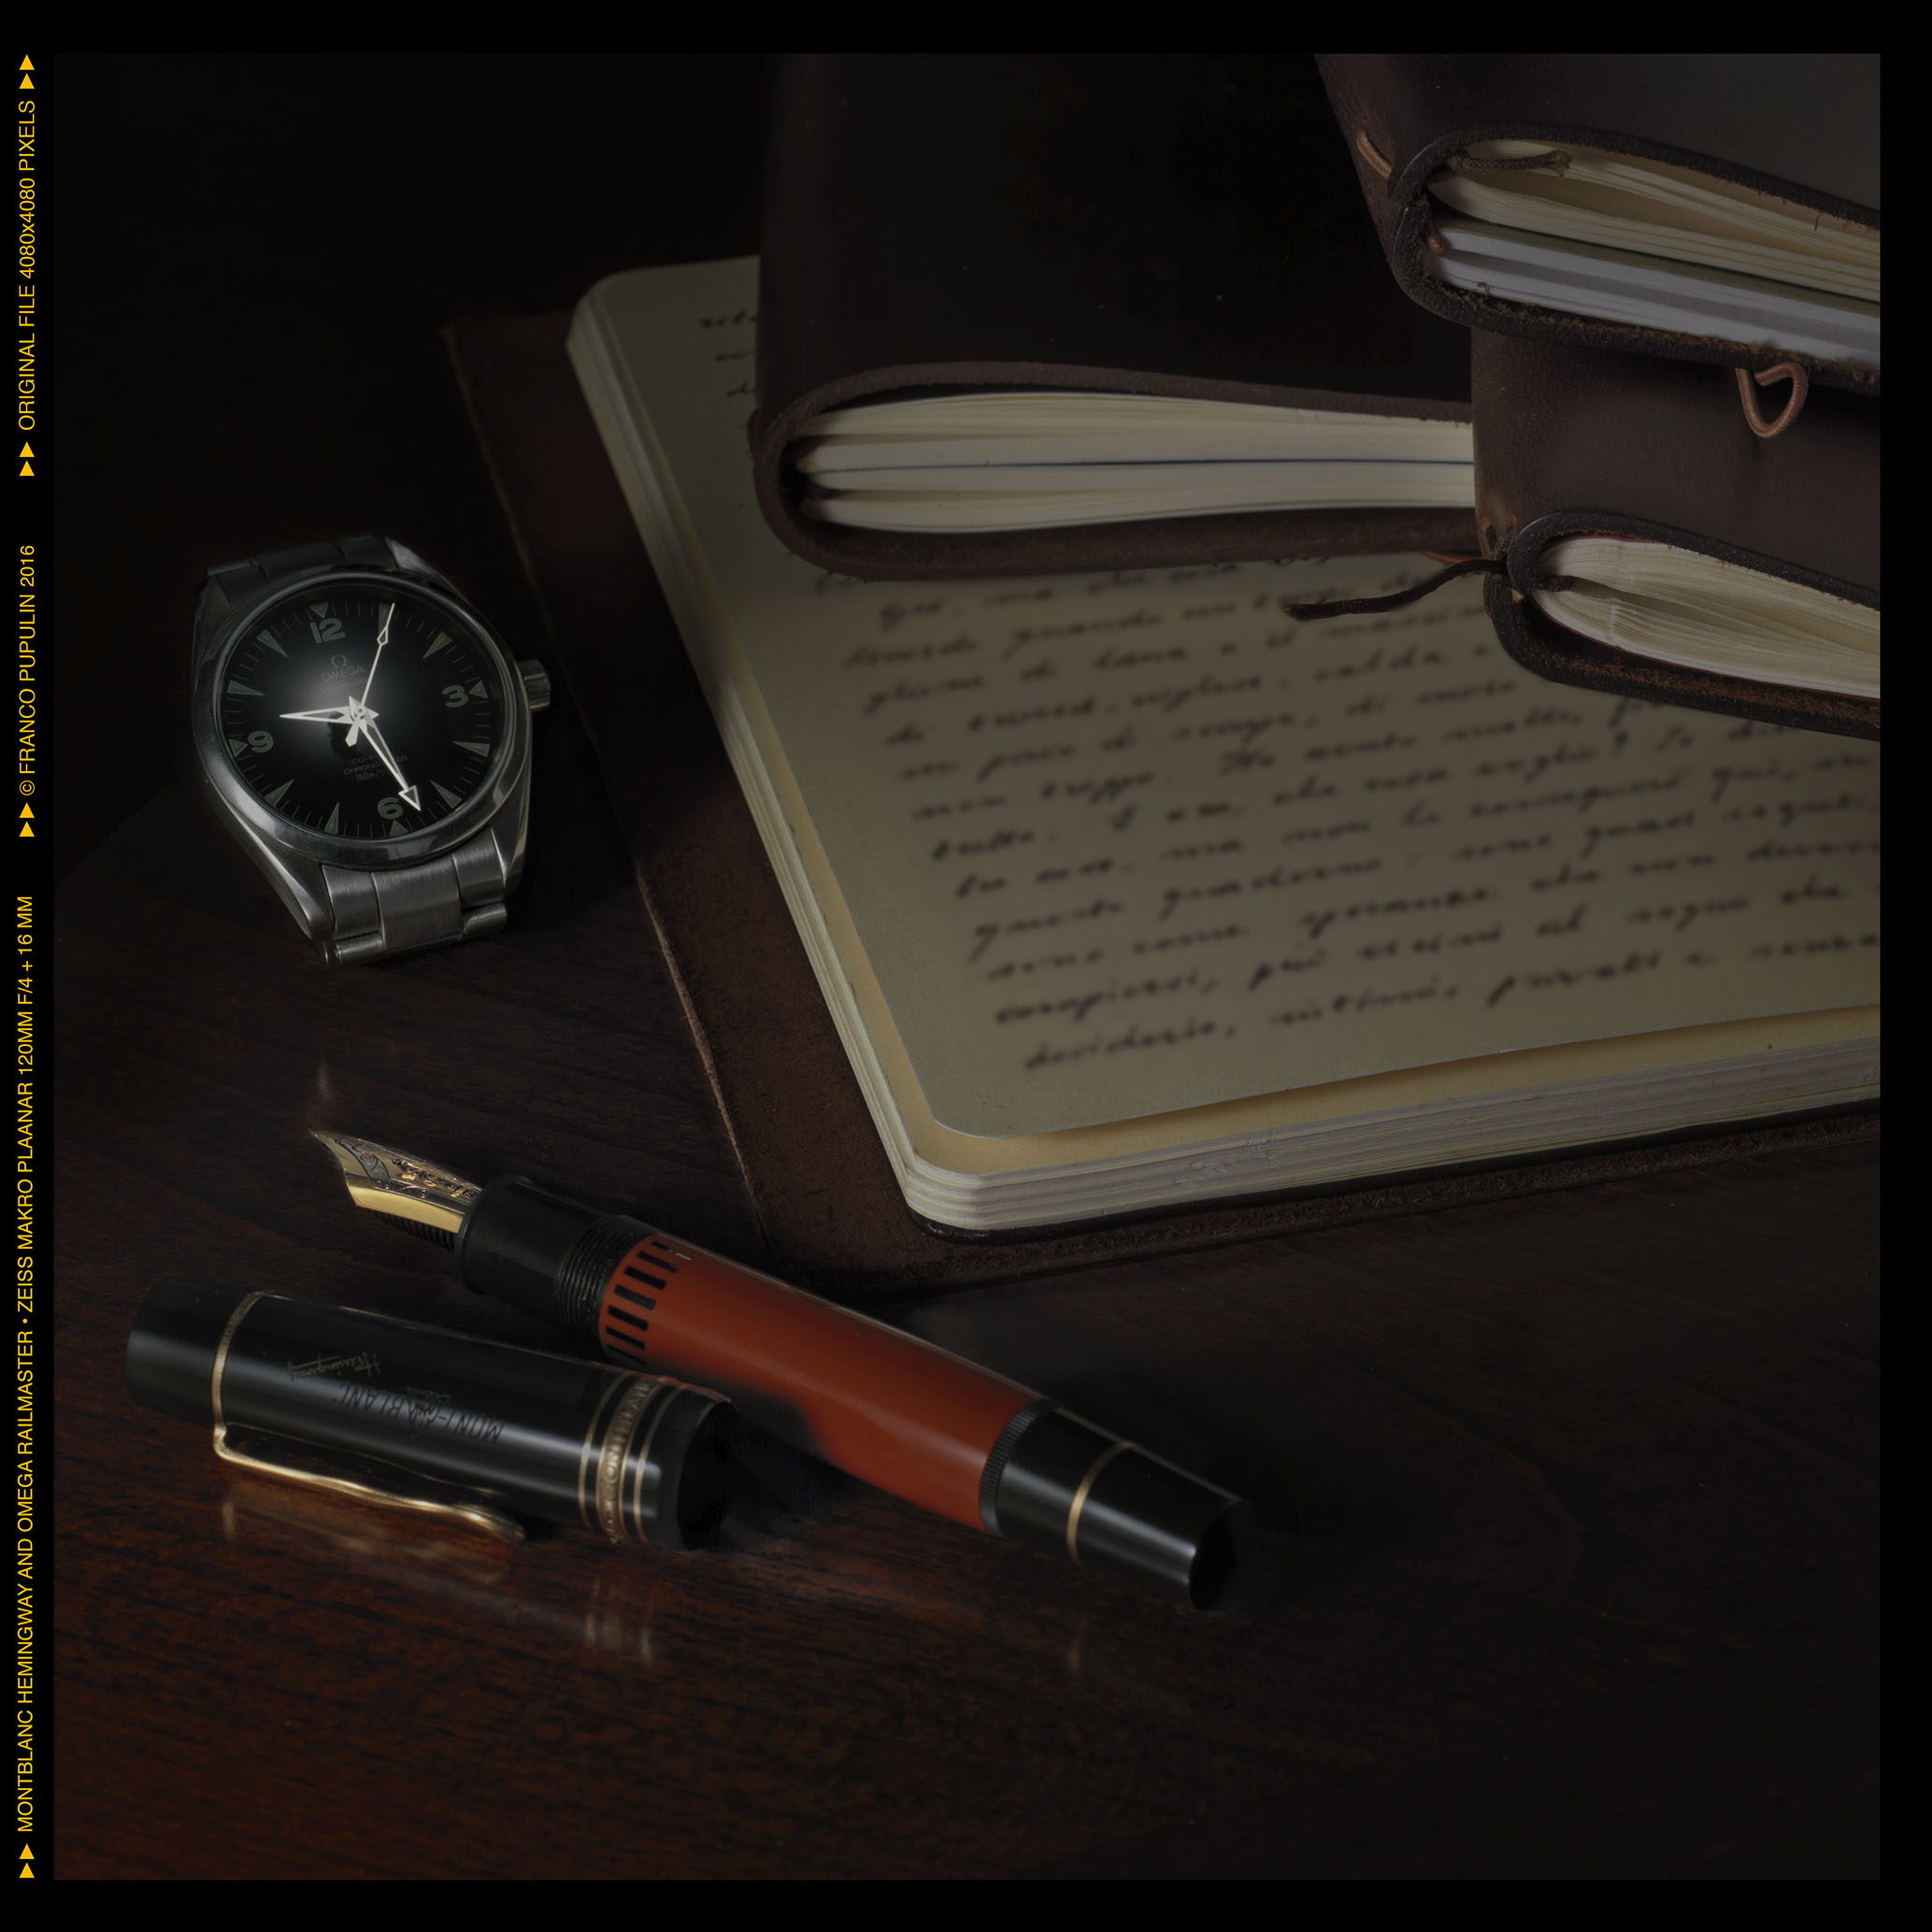 fpn_1460653077__montblanc_hemingway_and_